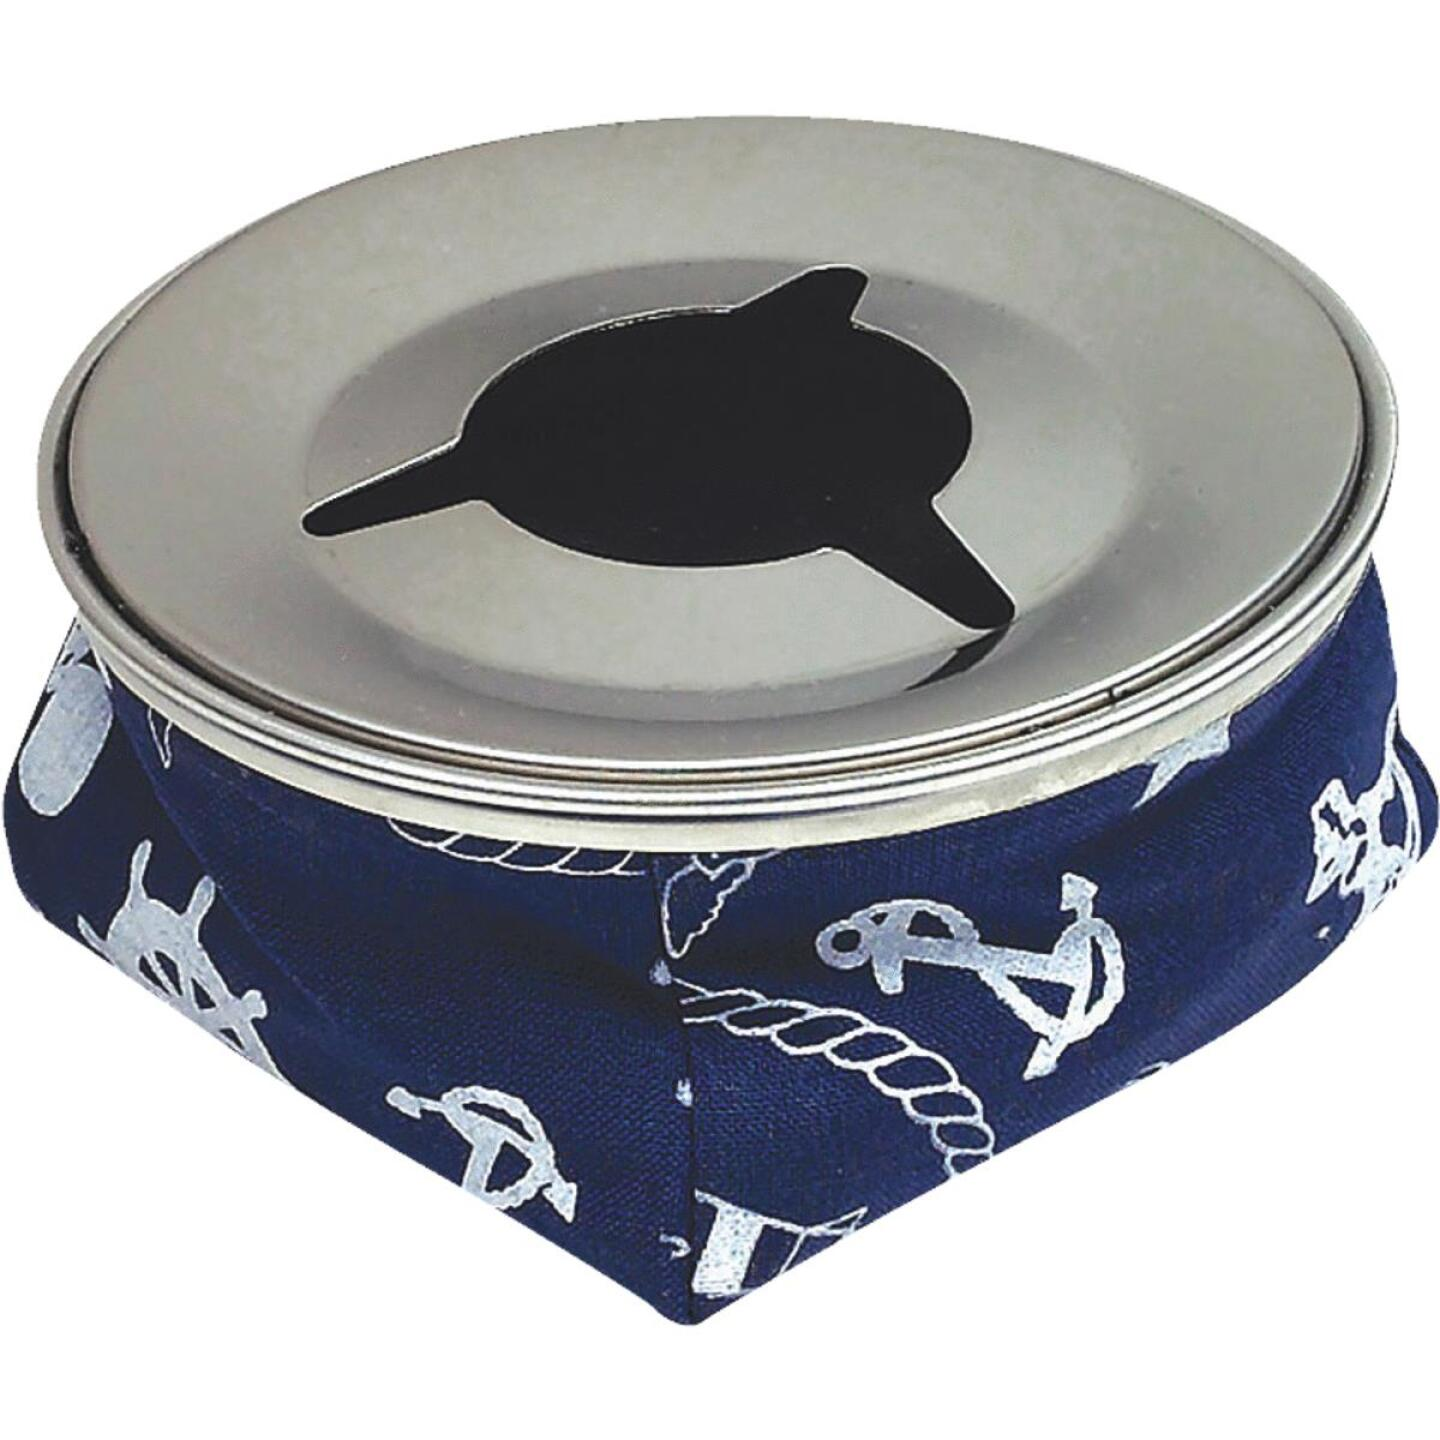 Seachoice 4-1/8 In. Blue Stainless Steel Windproof Ashtray Image 1